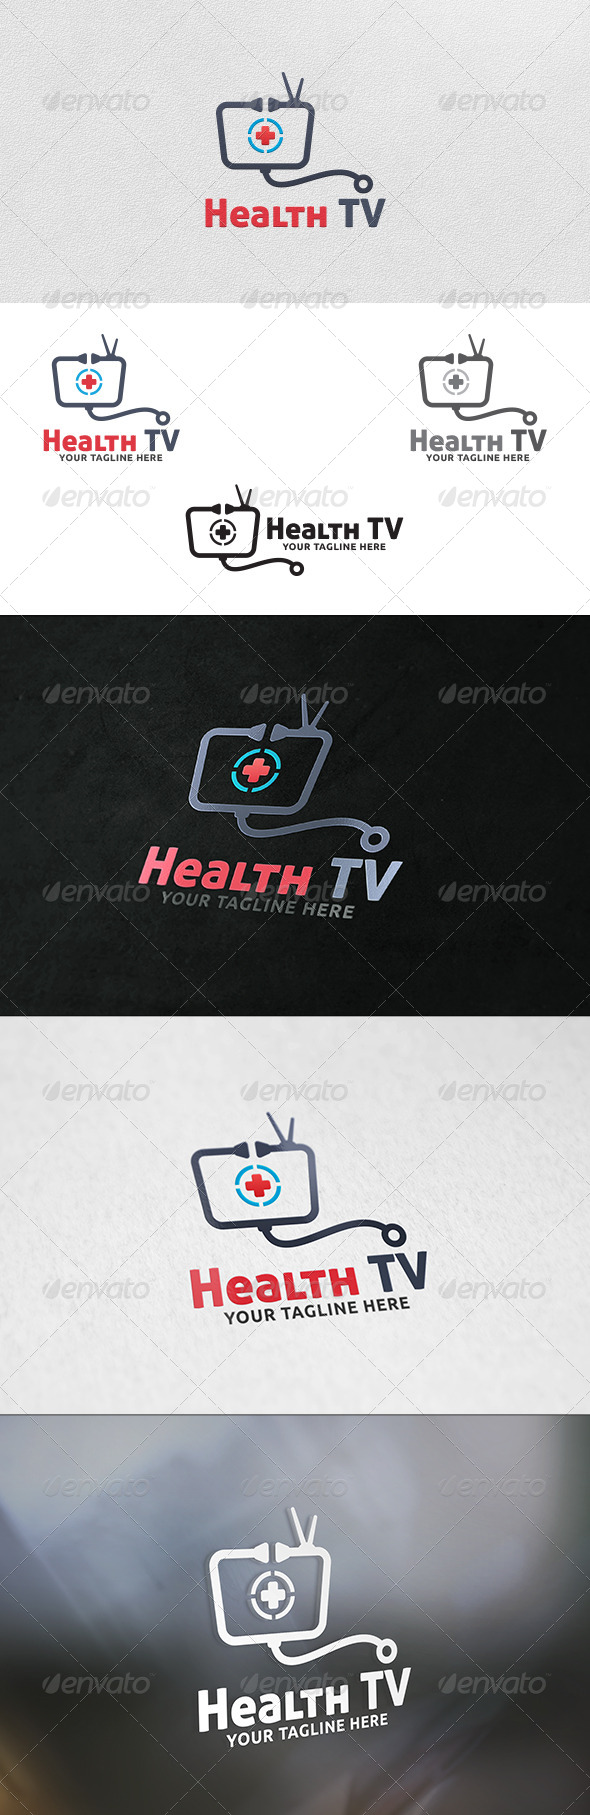 Health TV Logo Template